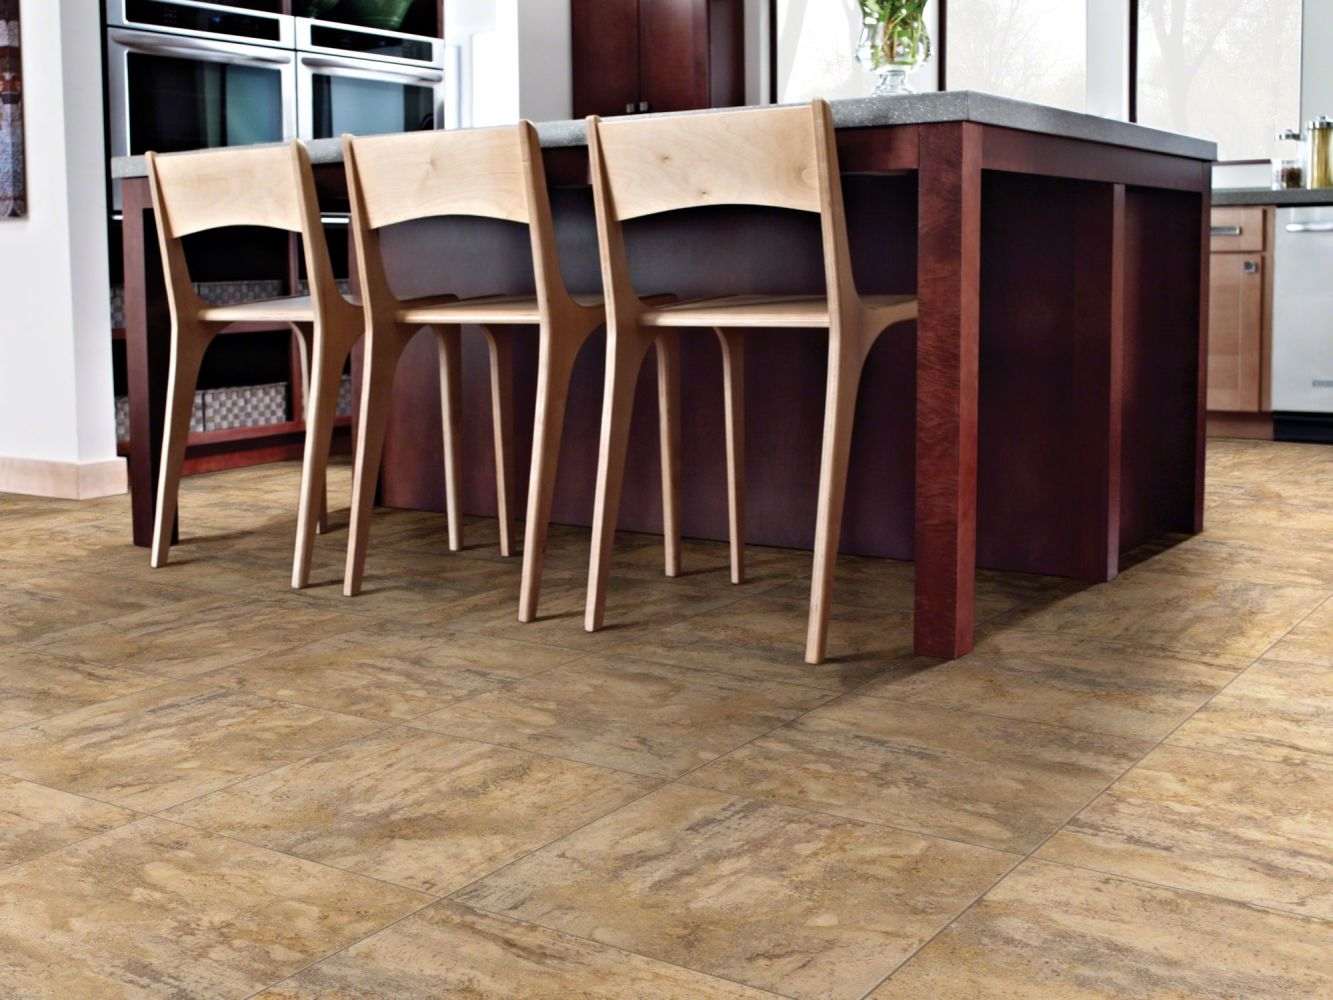 Shaw Floors Resilient Residential Resort Tile Caramel 00201_0189V